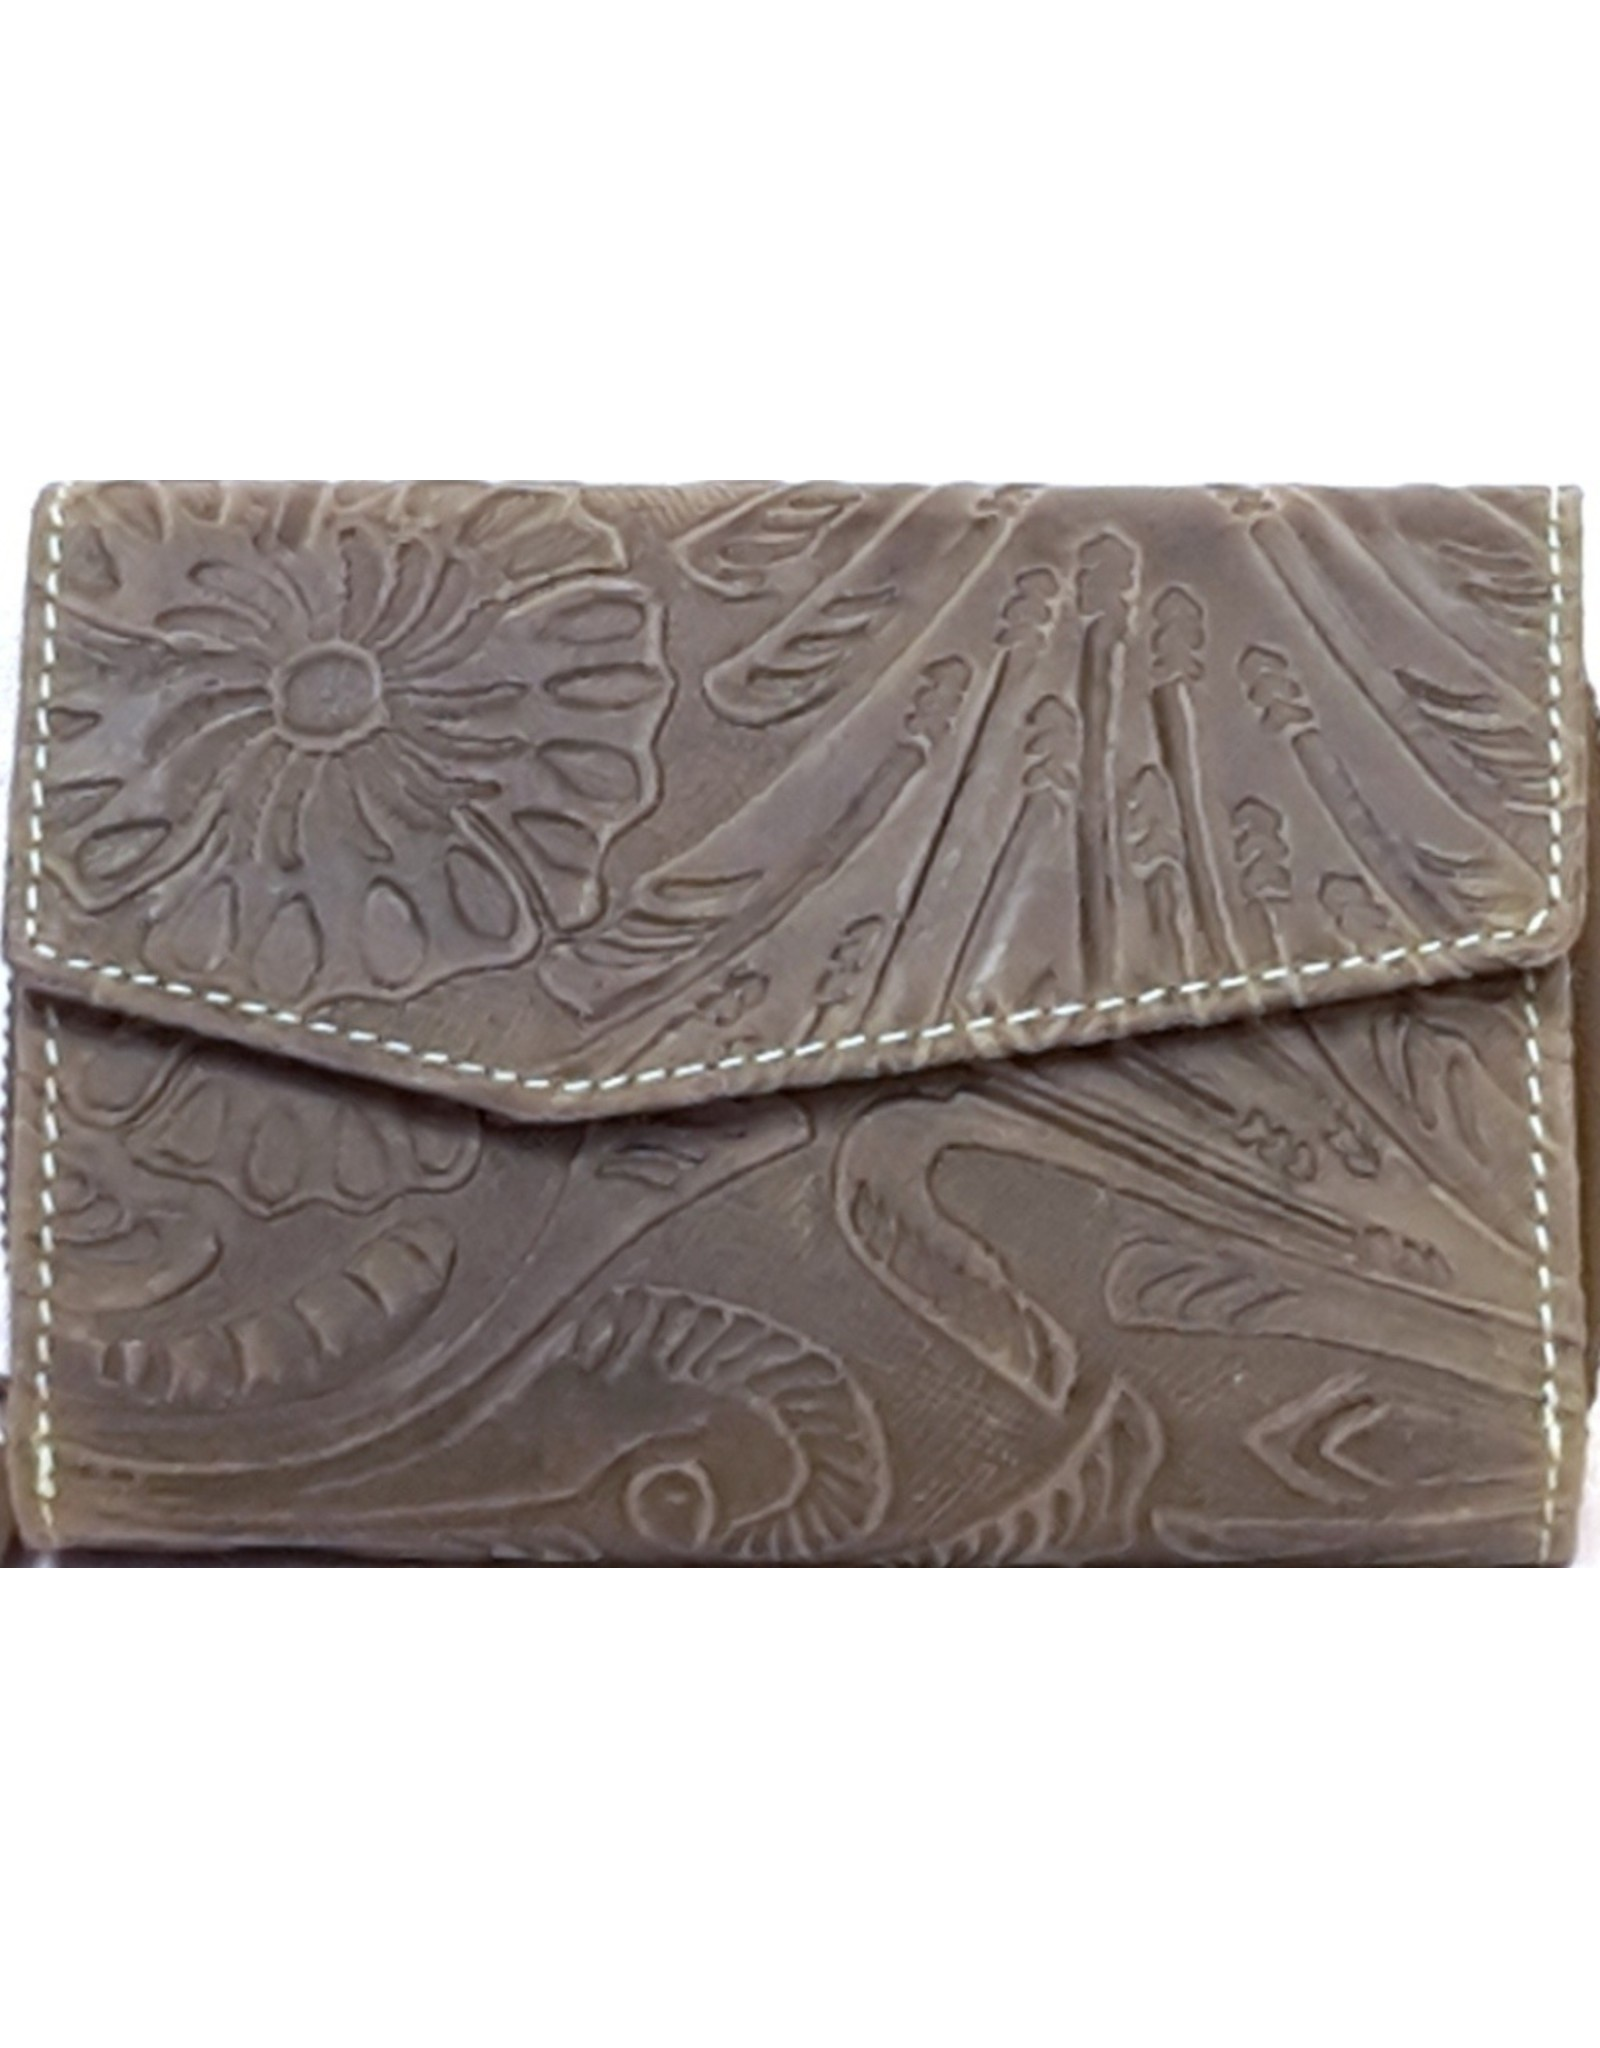 HillBurry Leather Wallets - Leather wallet with embossed floral pattern (green)